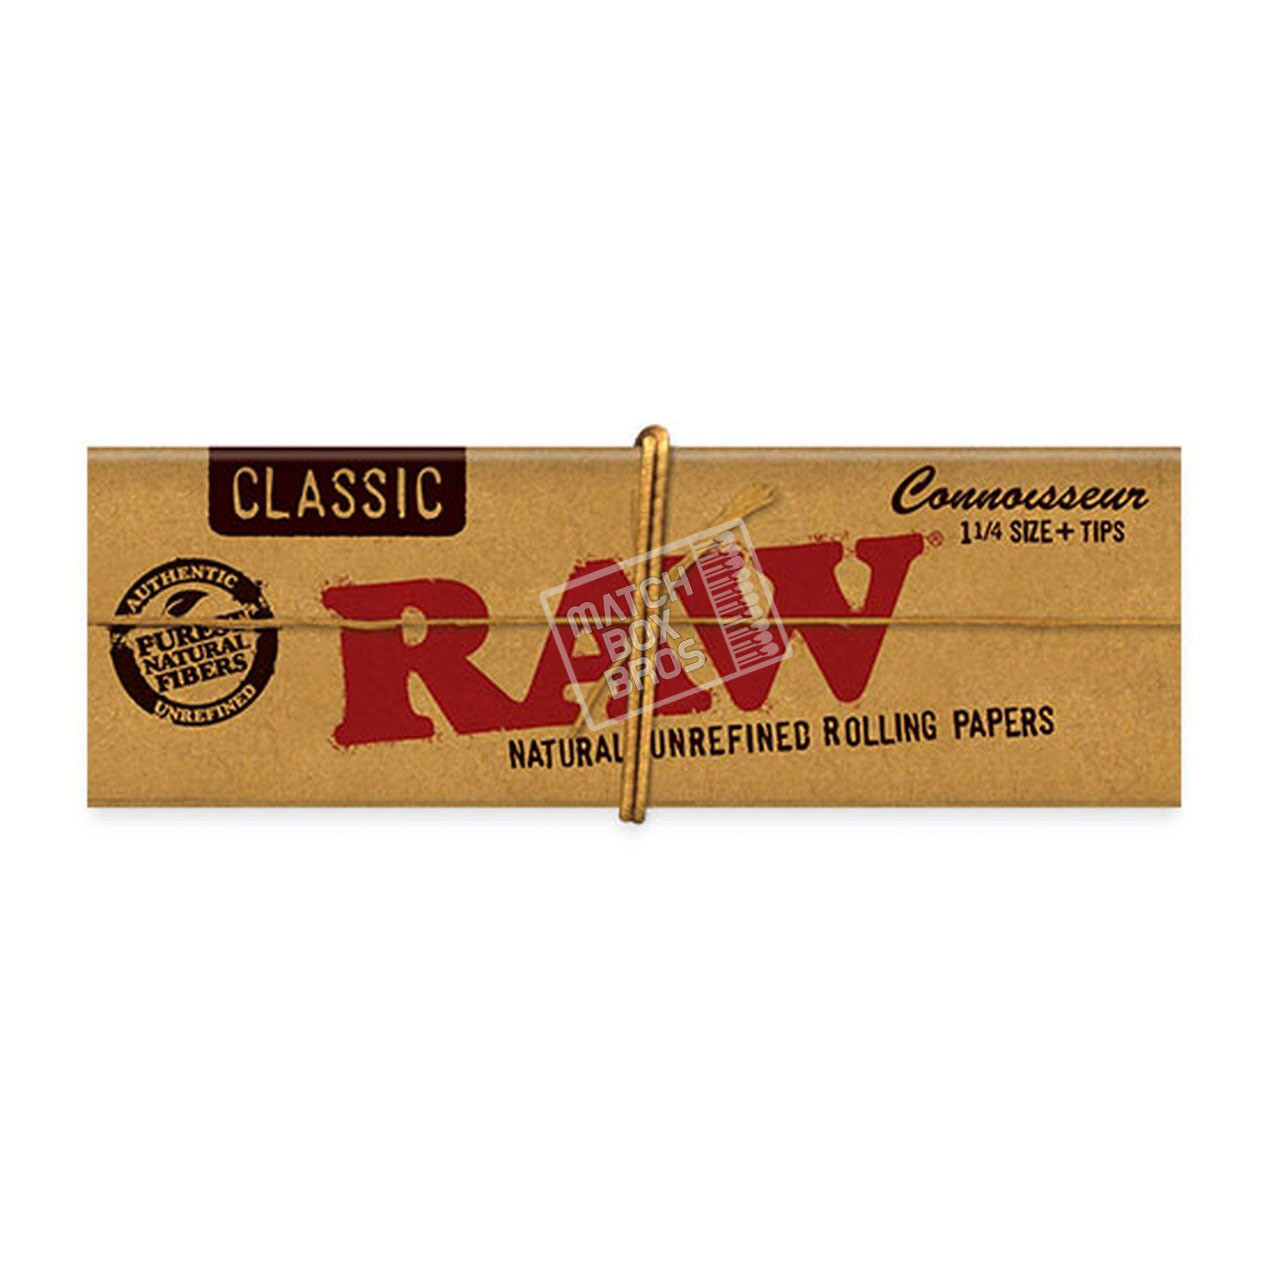 RAW Classic Connoisseur 1¼ Paper + Tips Pack